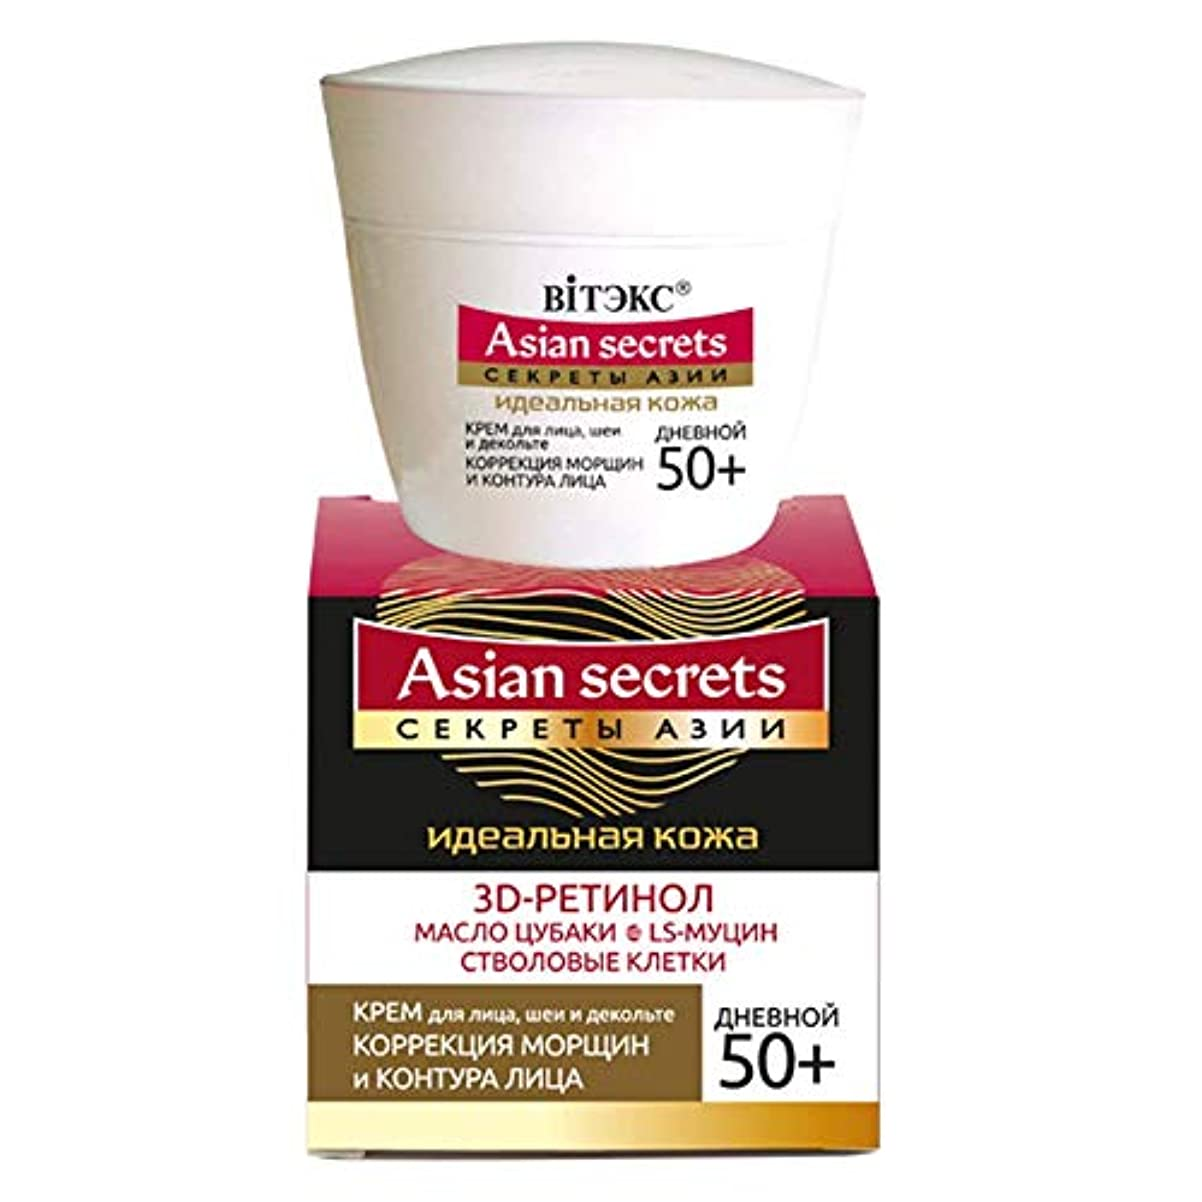 Bielita & Vitex   Asian seсrets   Day cream for face, neck and neckline   Wrinkle and facial contour correction...